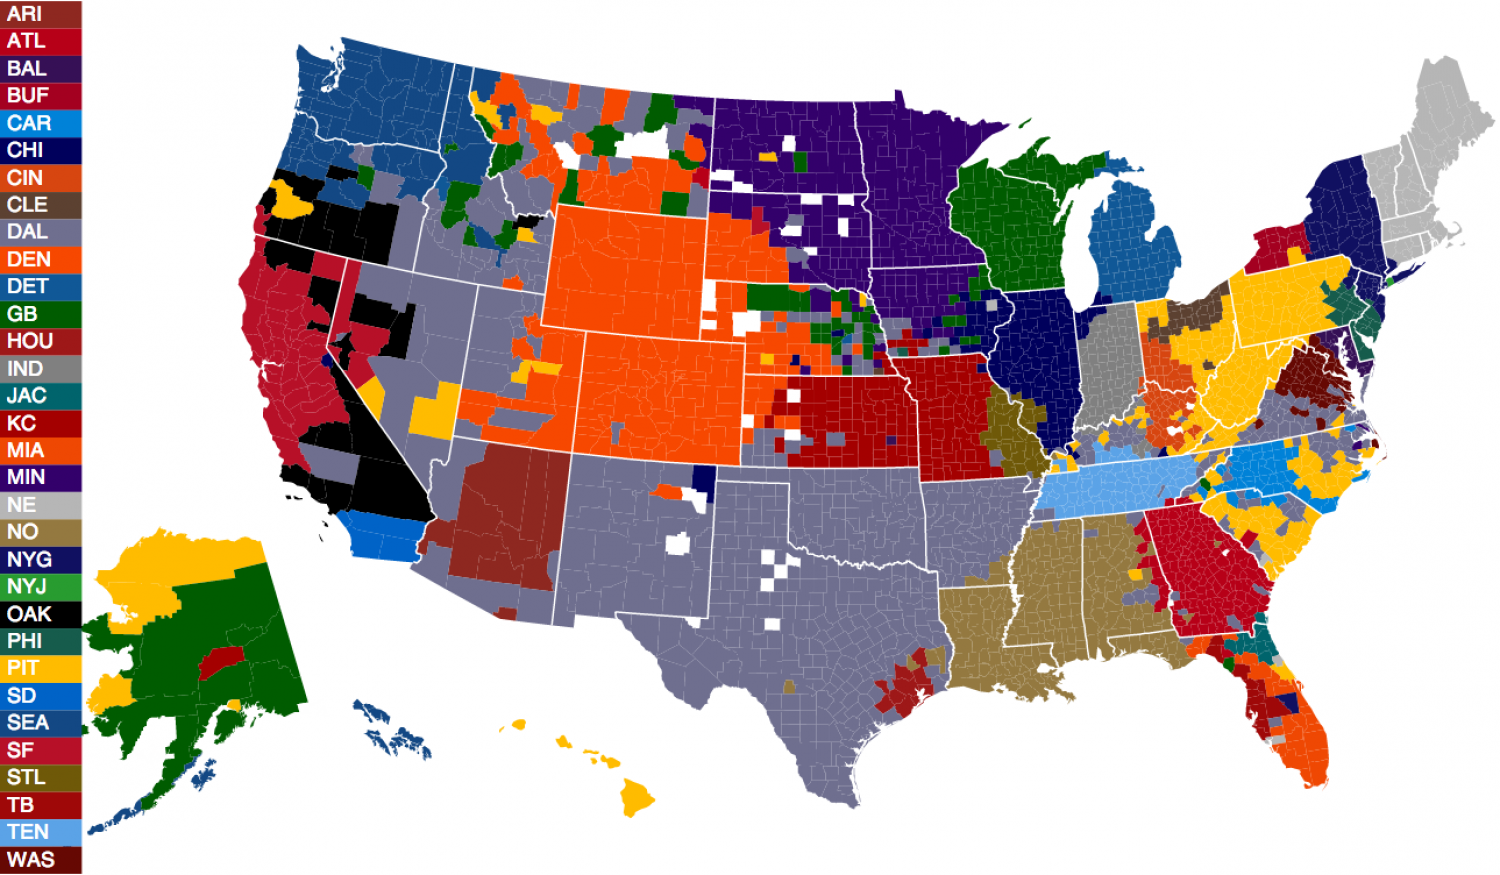 The United States of Football Infographic